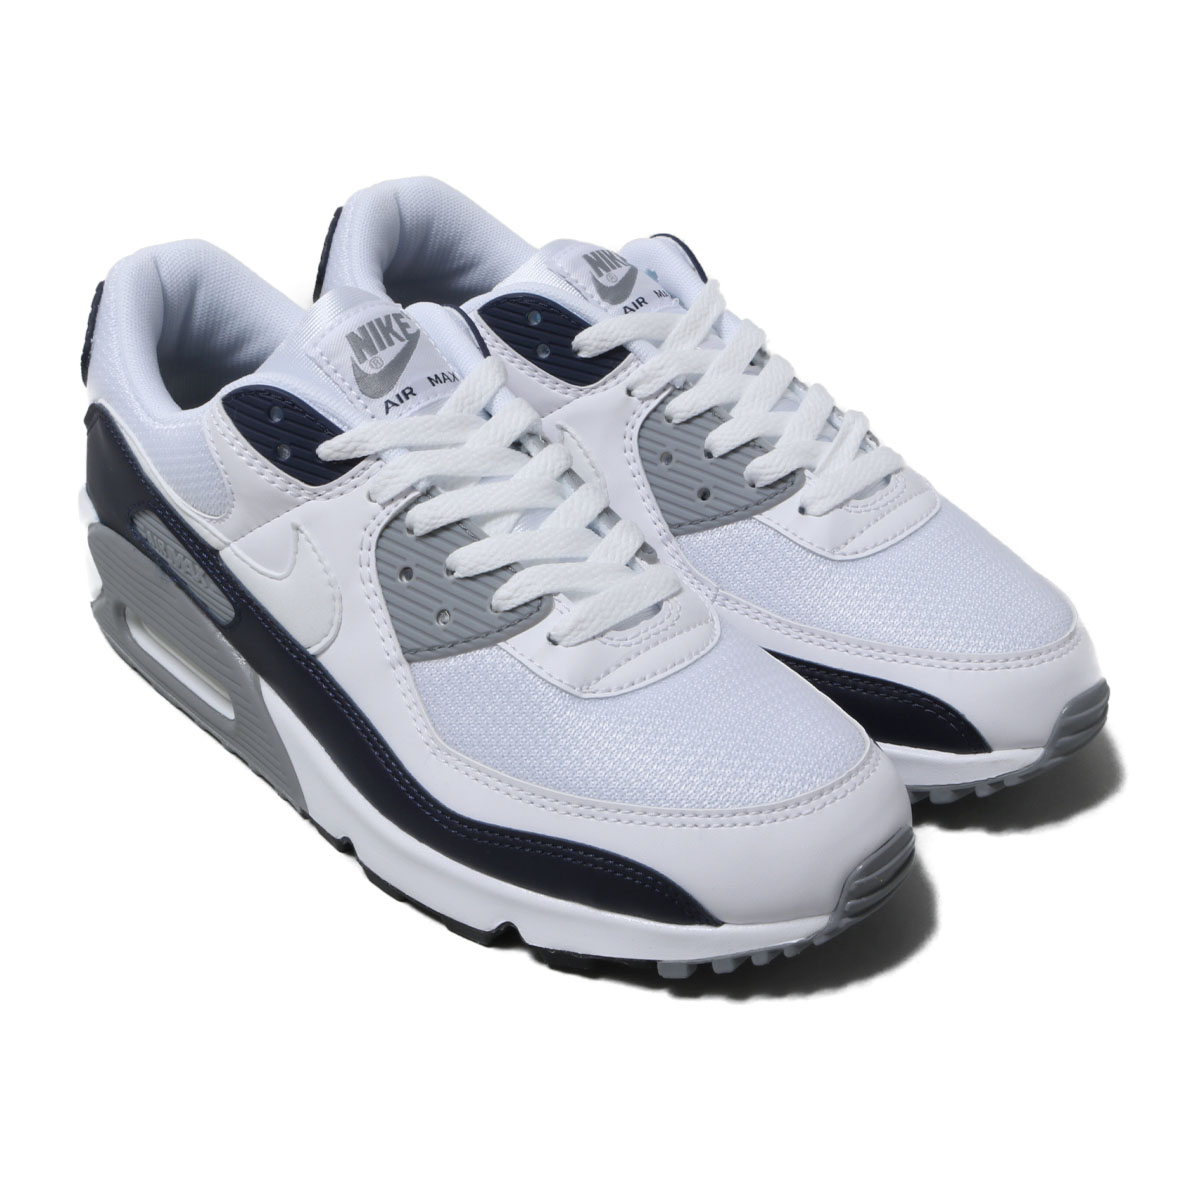 NIKE AIR MAX 90(ナイキ エア マックス 90)WHITE/WHITE-PARTICLE GREY-OBSIDIAN【メンズ スニーカー】20SU-I